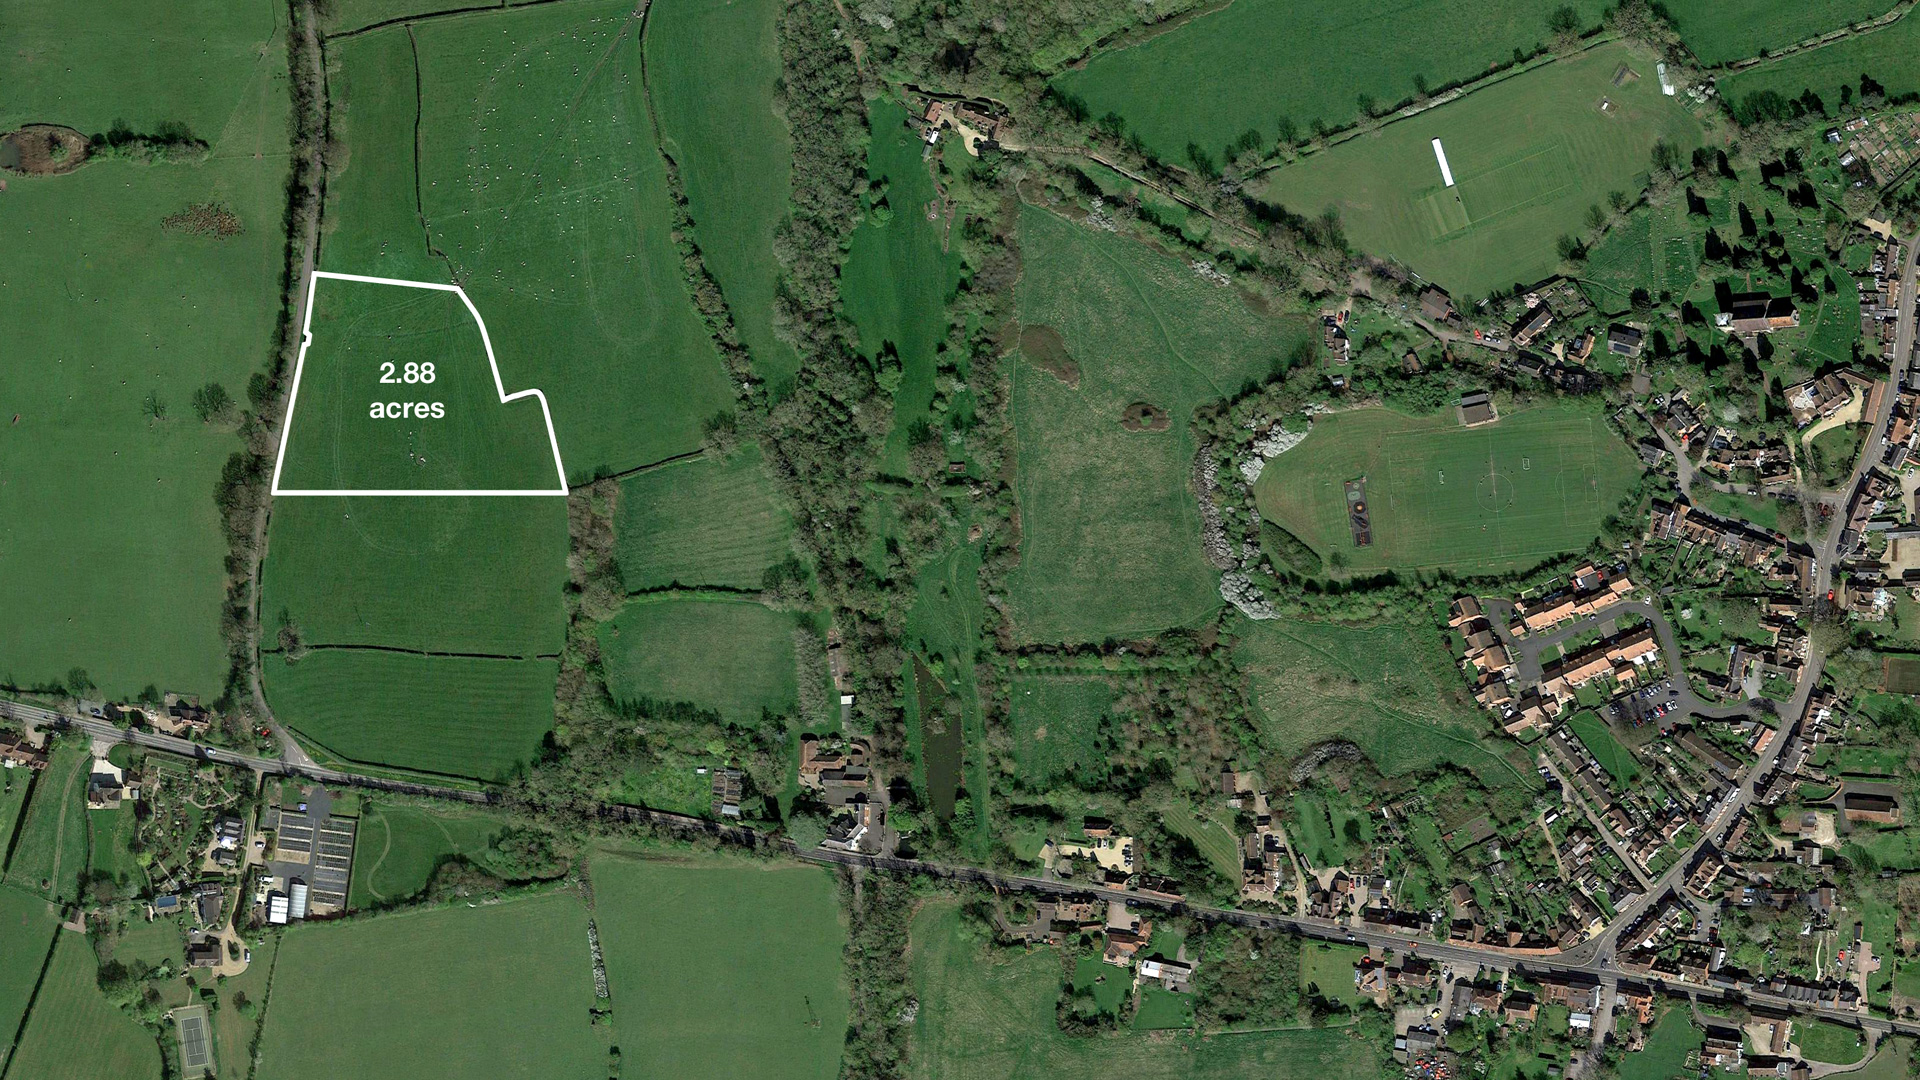 Land for sale in Redditch